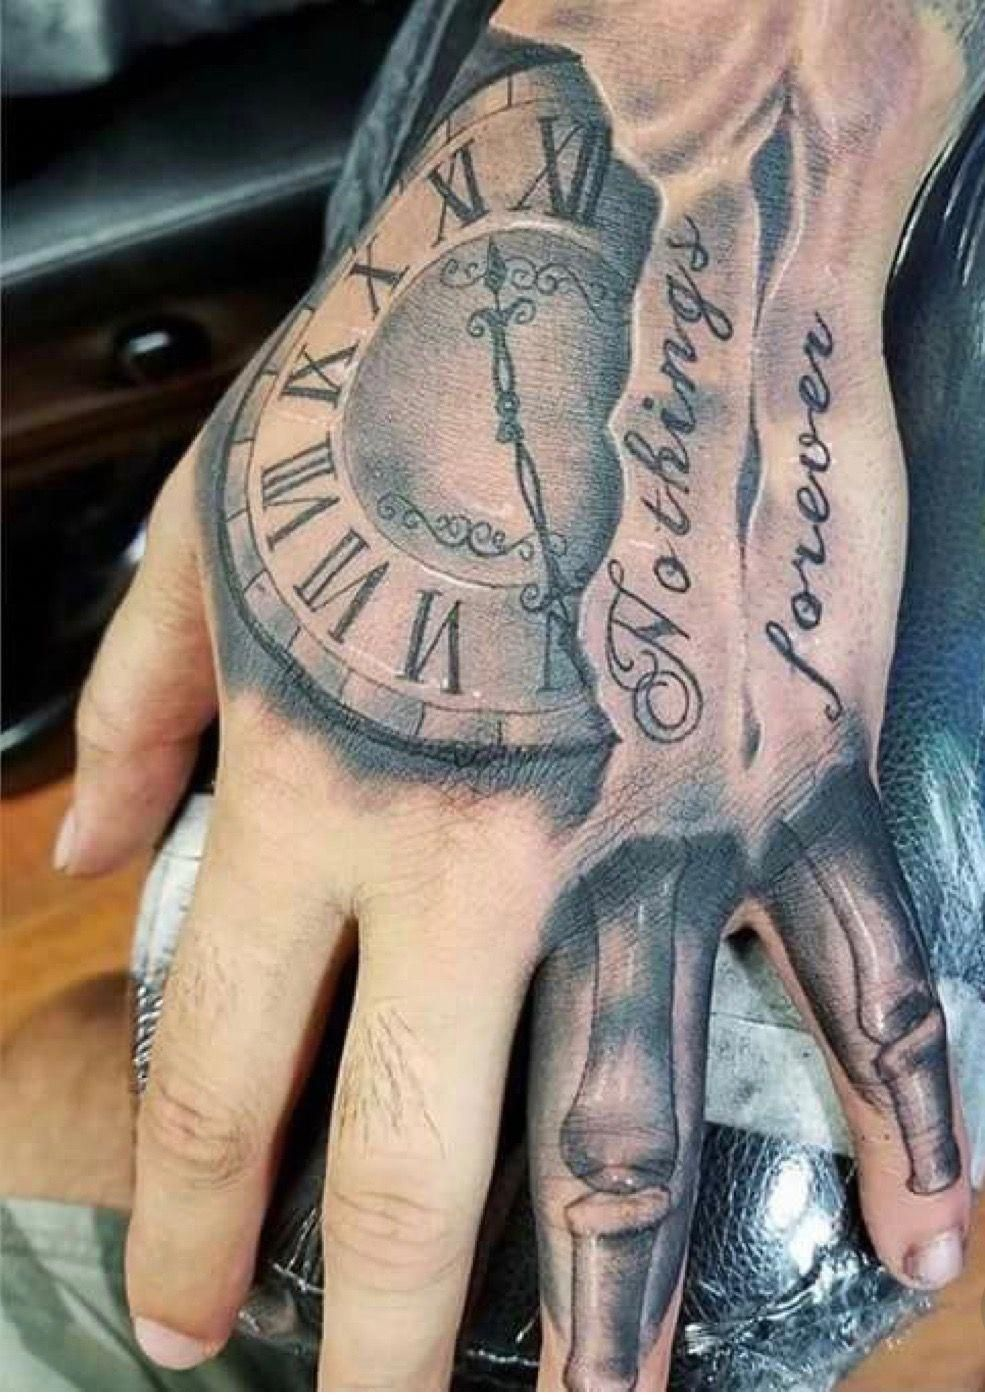 Time Hand Tattoos For Men In 2020 Hand Tattoos For Guys Hand Tattoos Skull Hand Tattoo